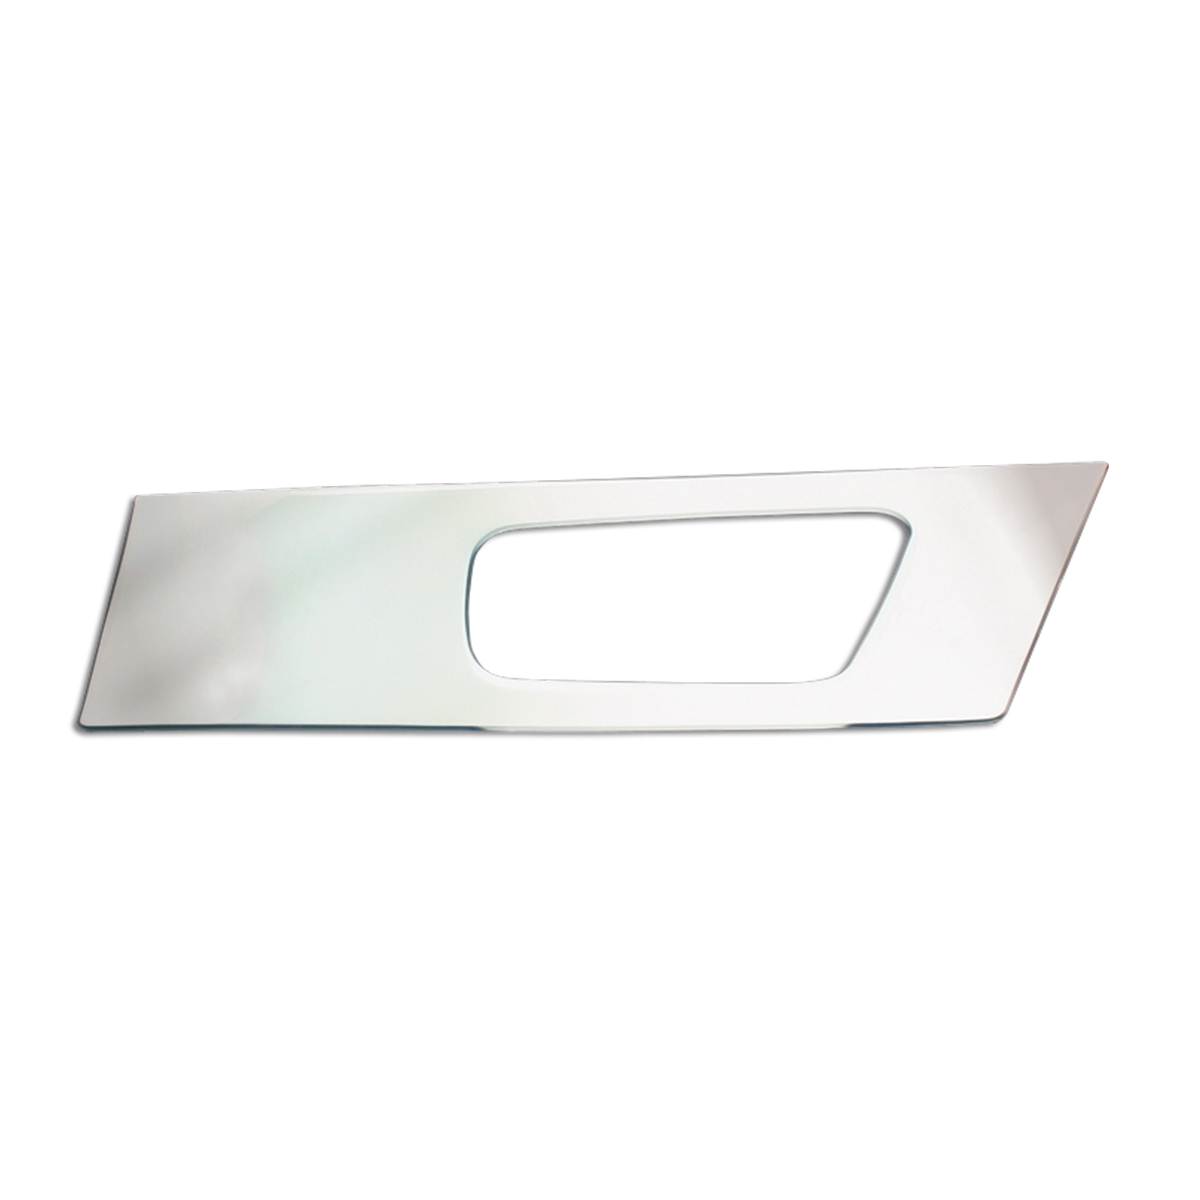 68919 KW Chrome Soft Plastic Passenger Side Door Panel